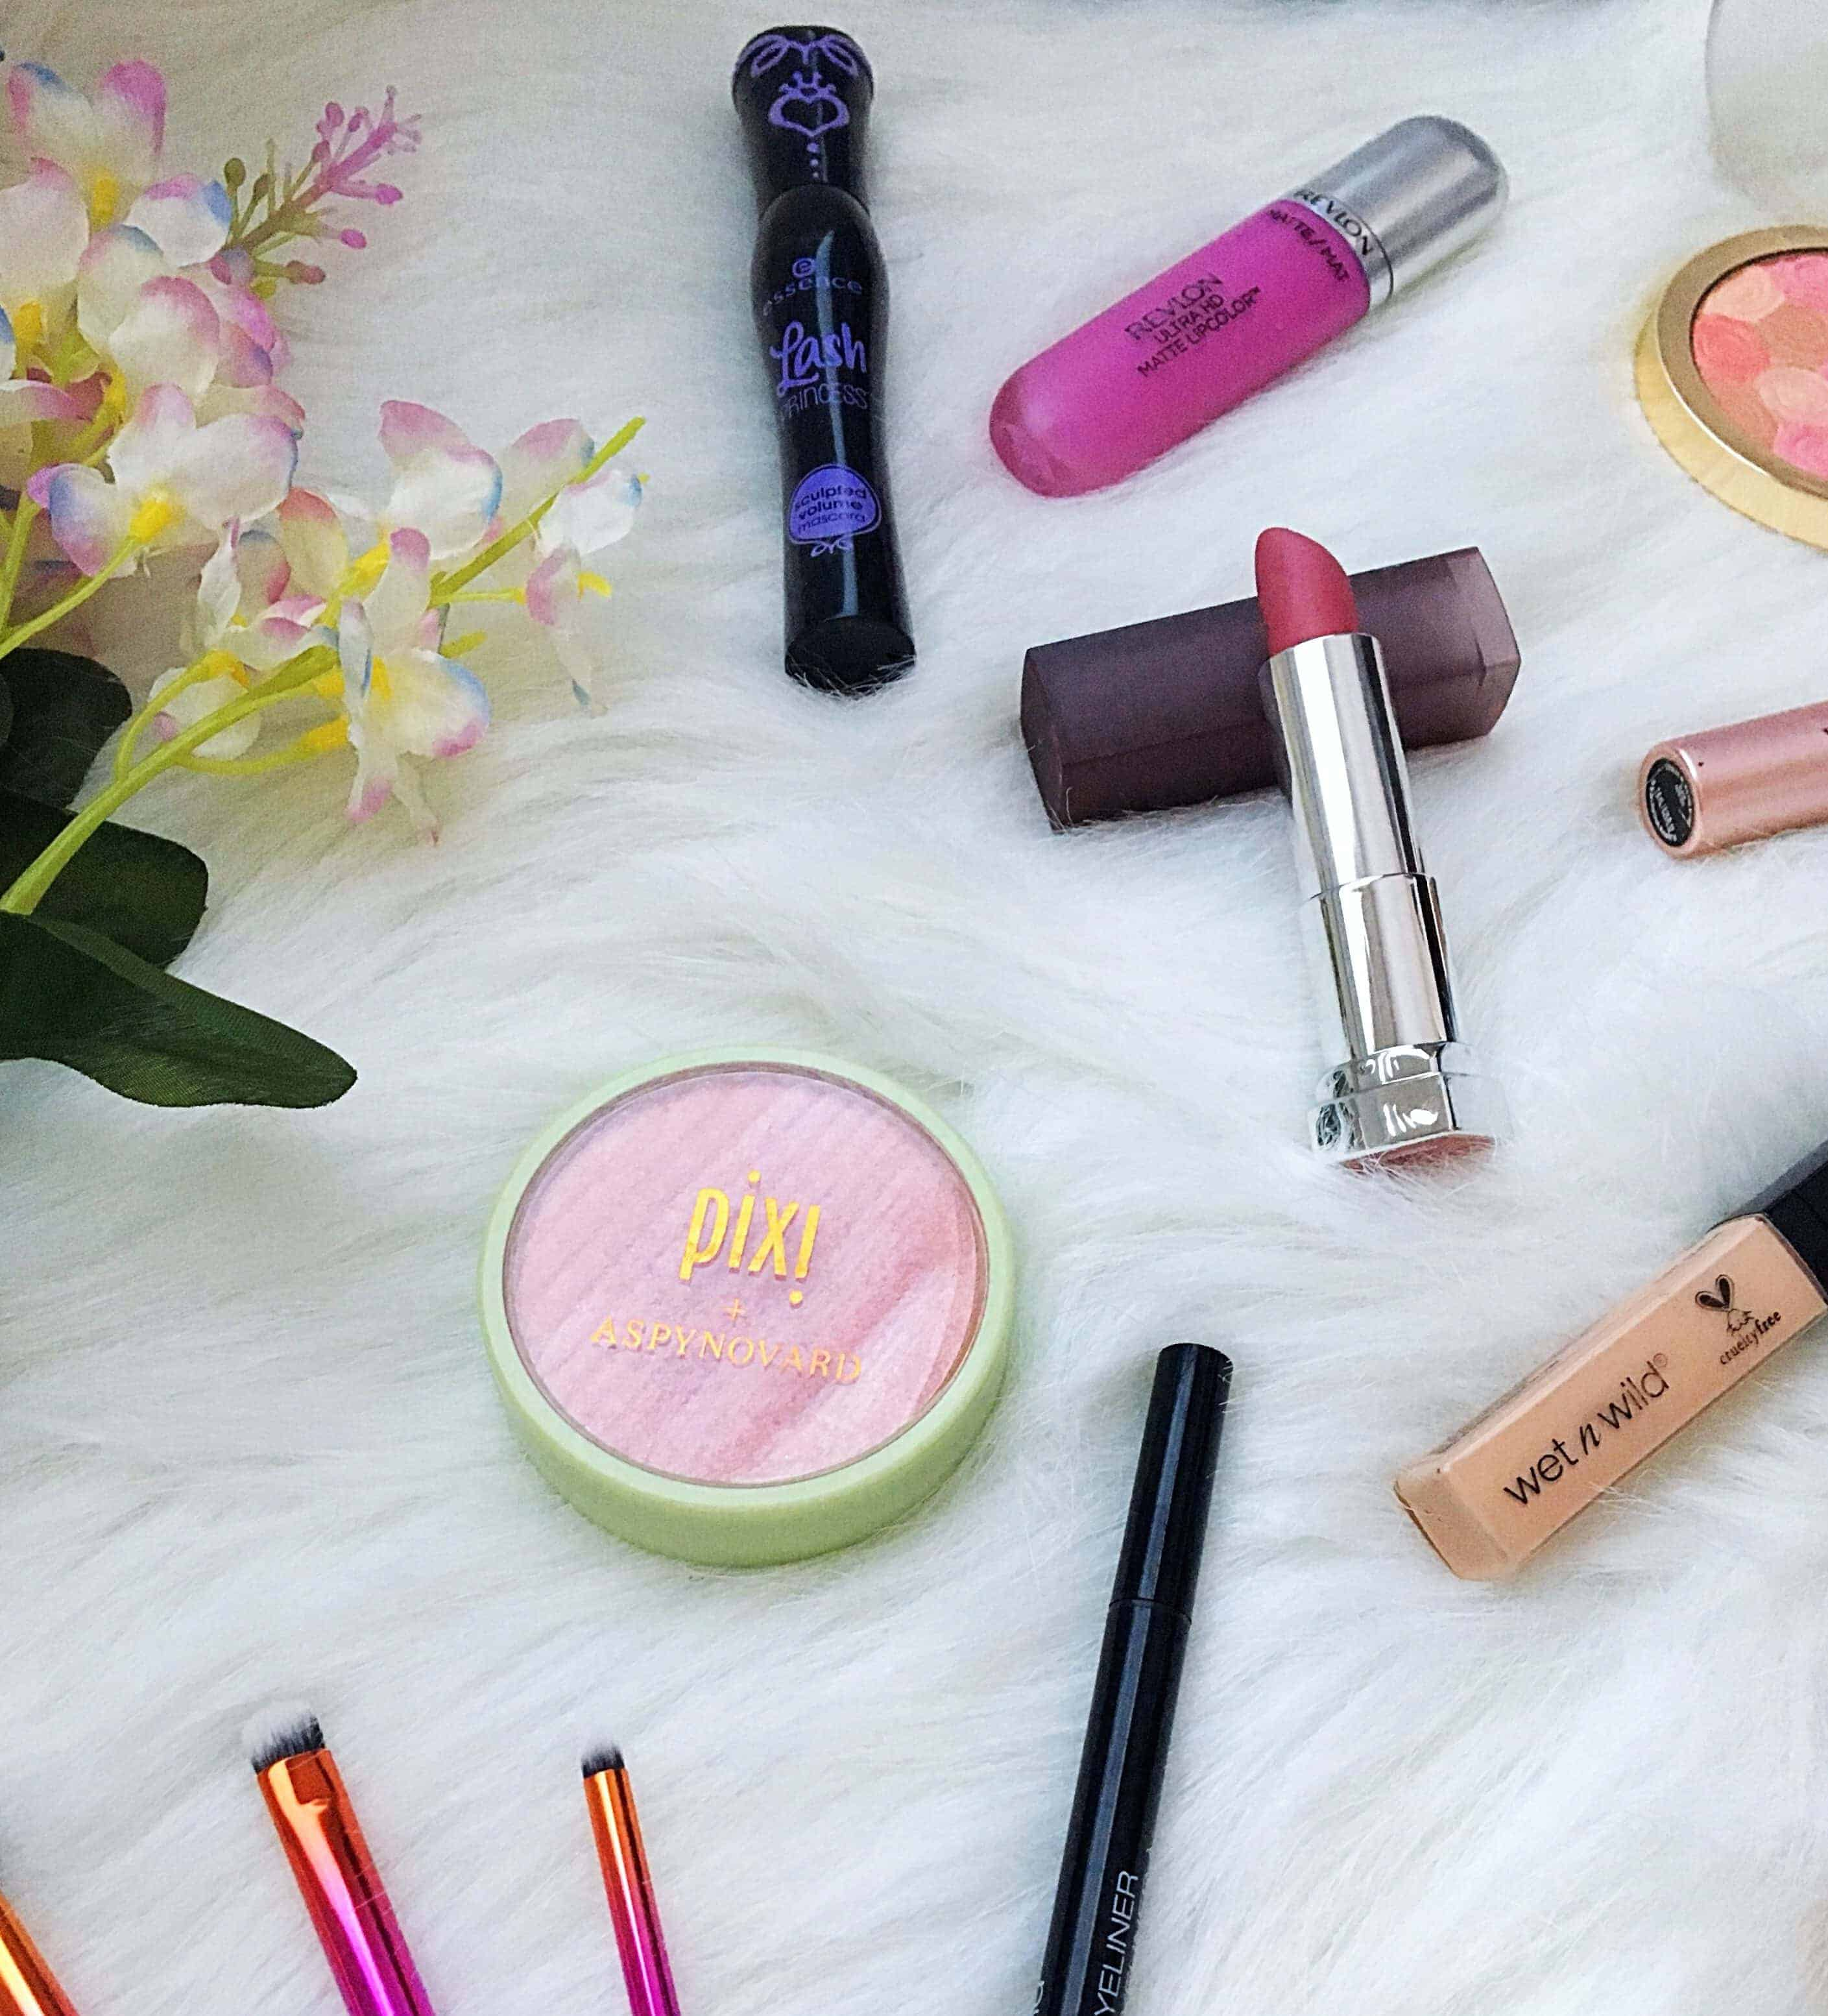 The Best Affordable Makeup & Beauty Products of 2017 - Are you an affordable makeup junkie and beauty lover? Then you'll want to check out this post full of amazing best-selling drugstore and affordable makeup and beauty items from 2017!